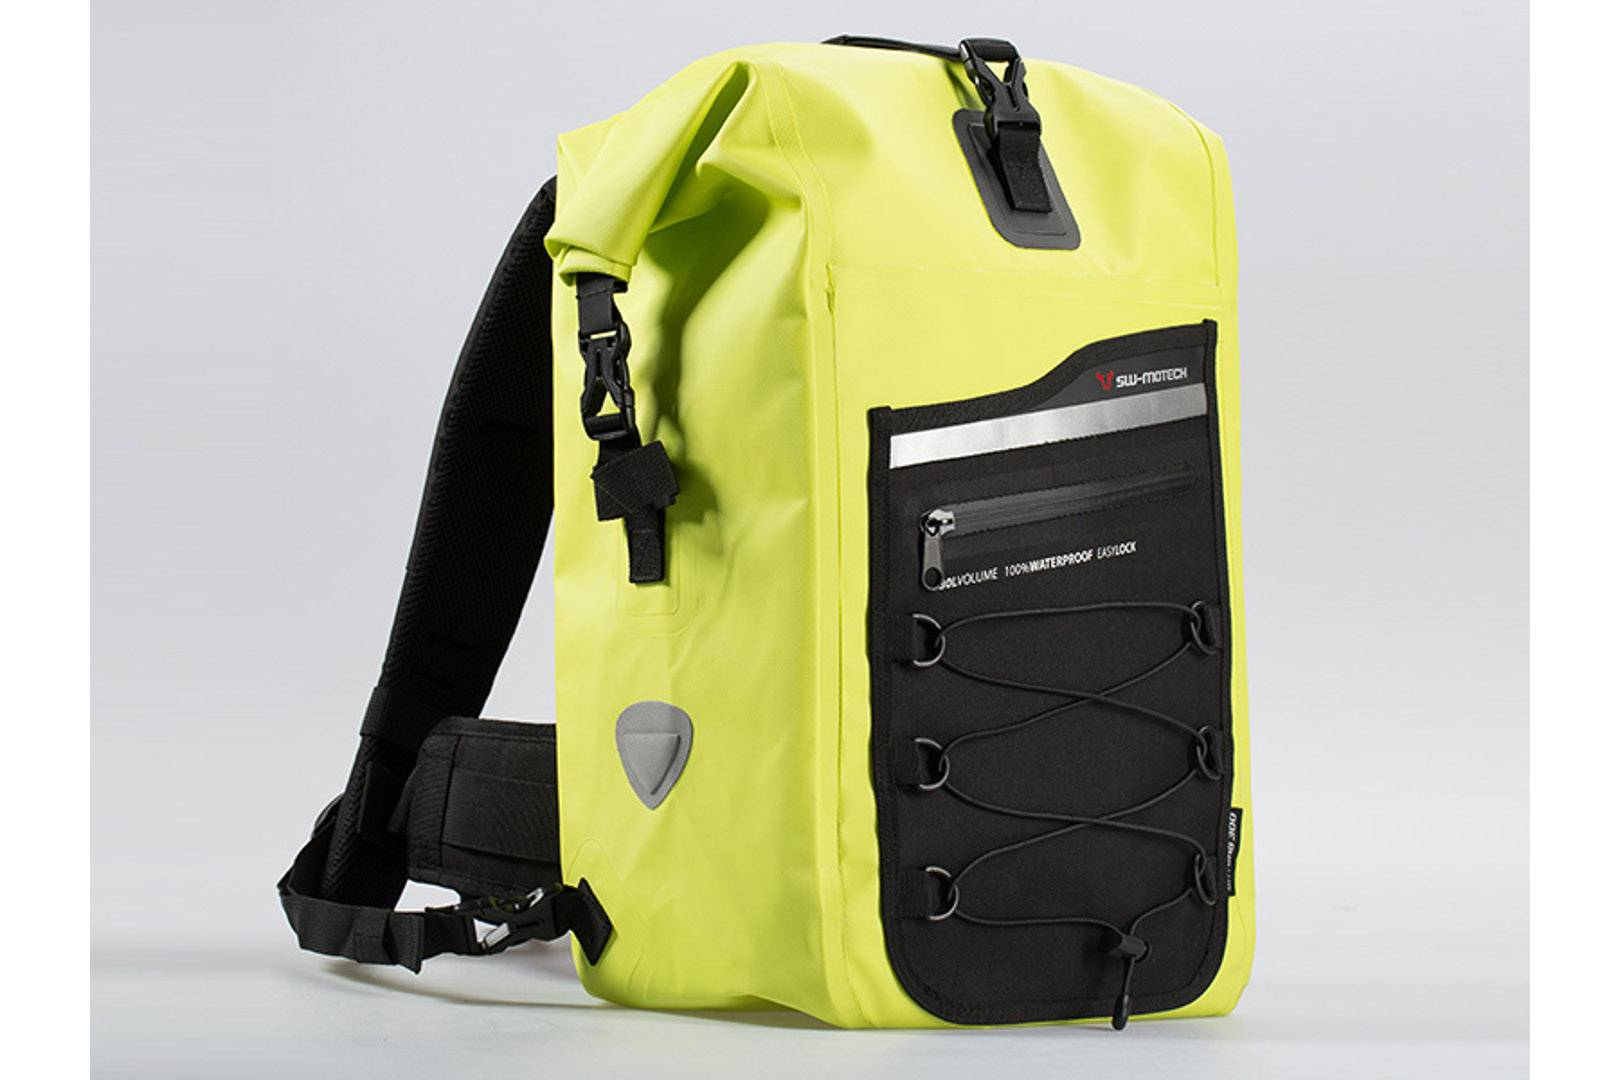 SW-Motech Drybag 300 backpack - 30 l. Signal yellow. Waterproof.